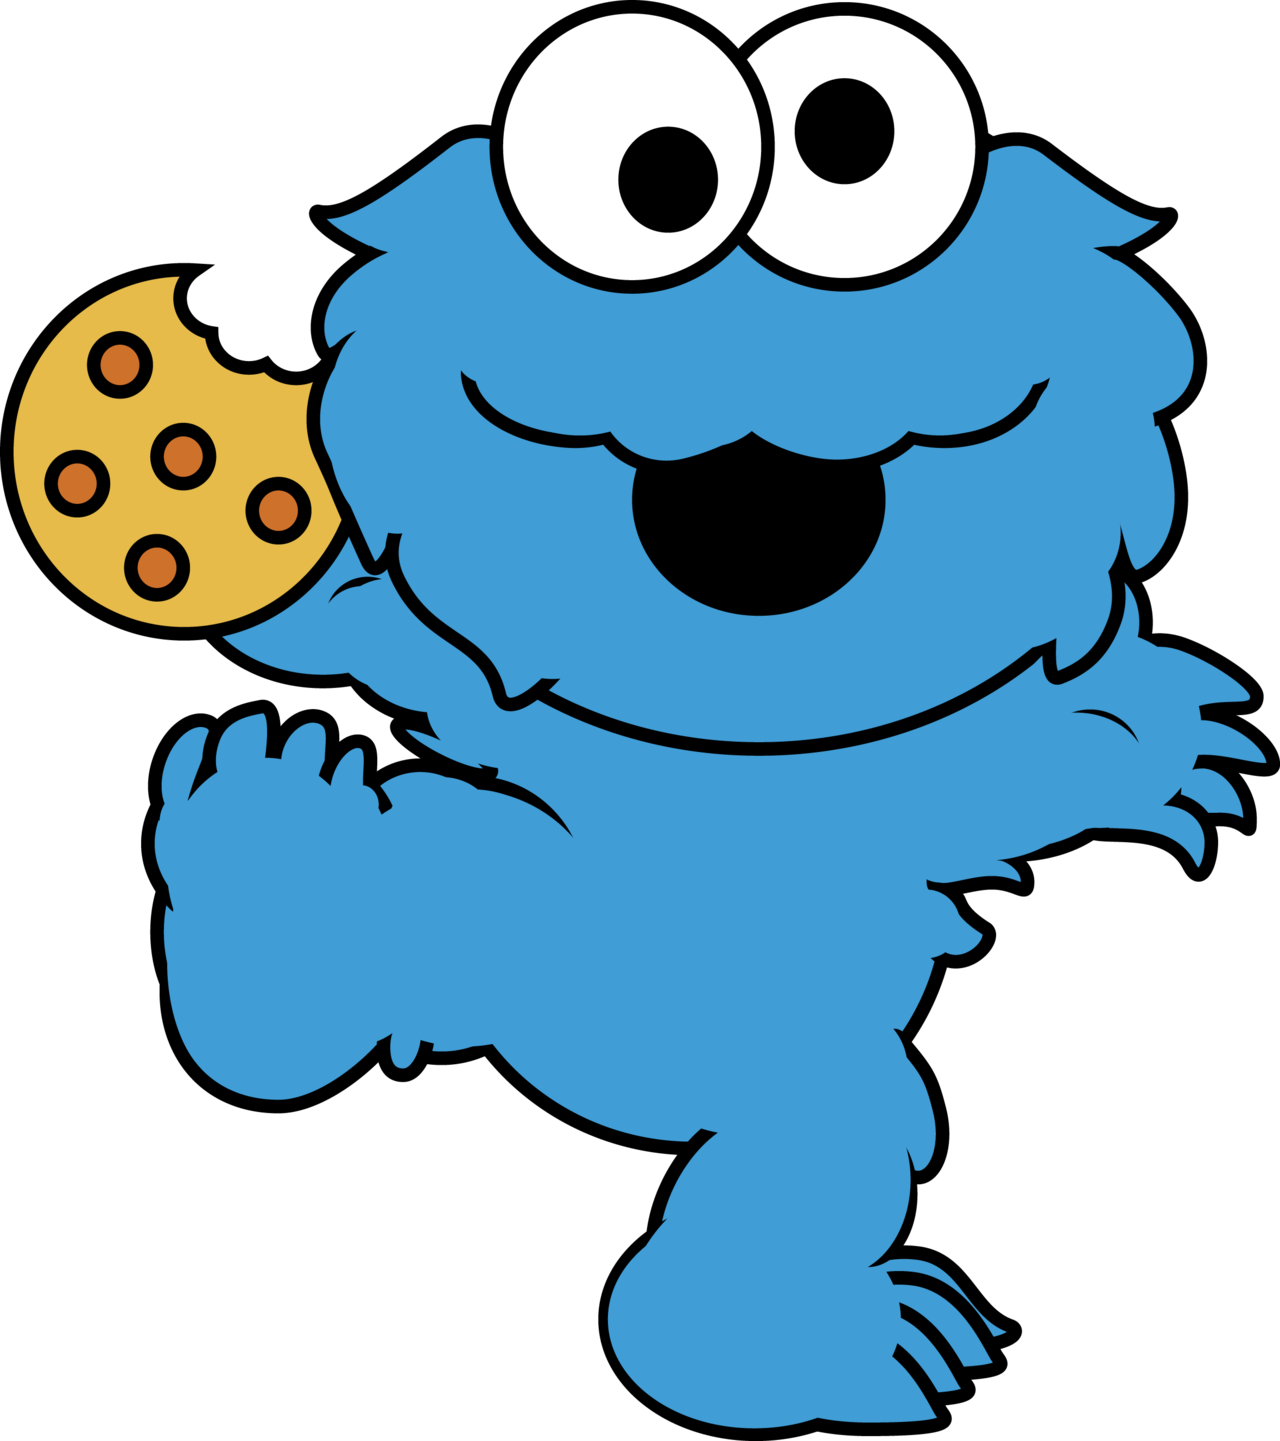 This Is Best Cookie Monster Clip Art Face Clipart Free Images For Your Project Or Presentation To Use Personal Commersial